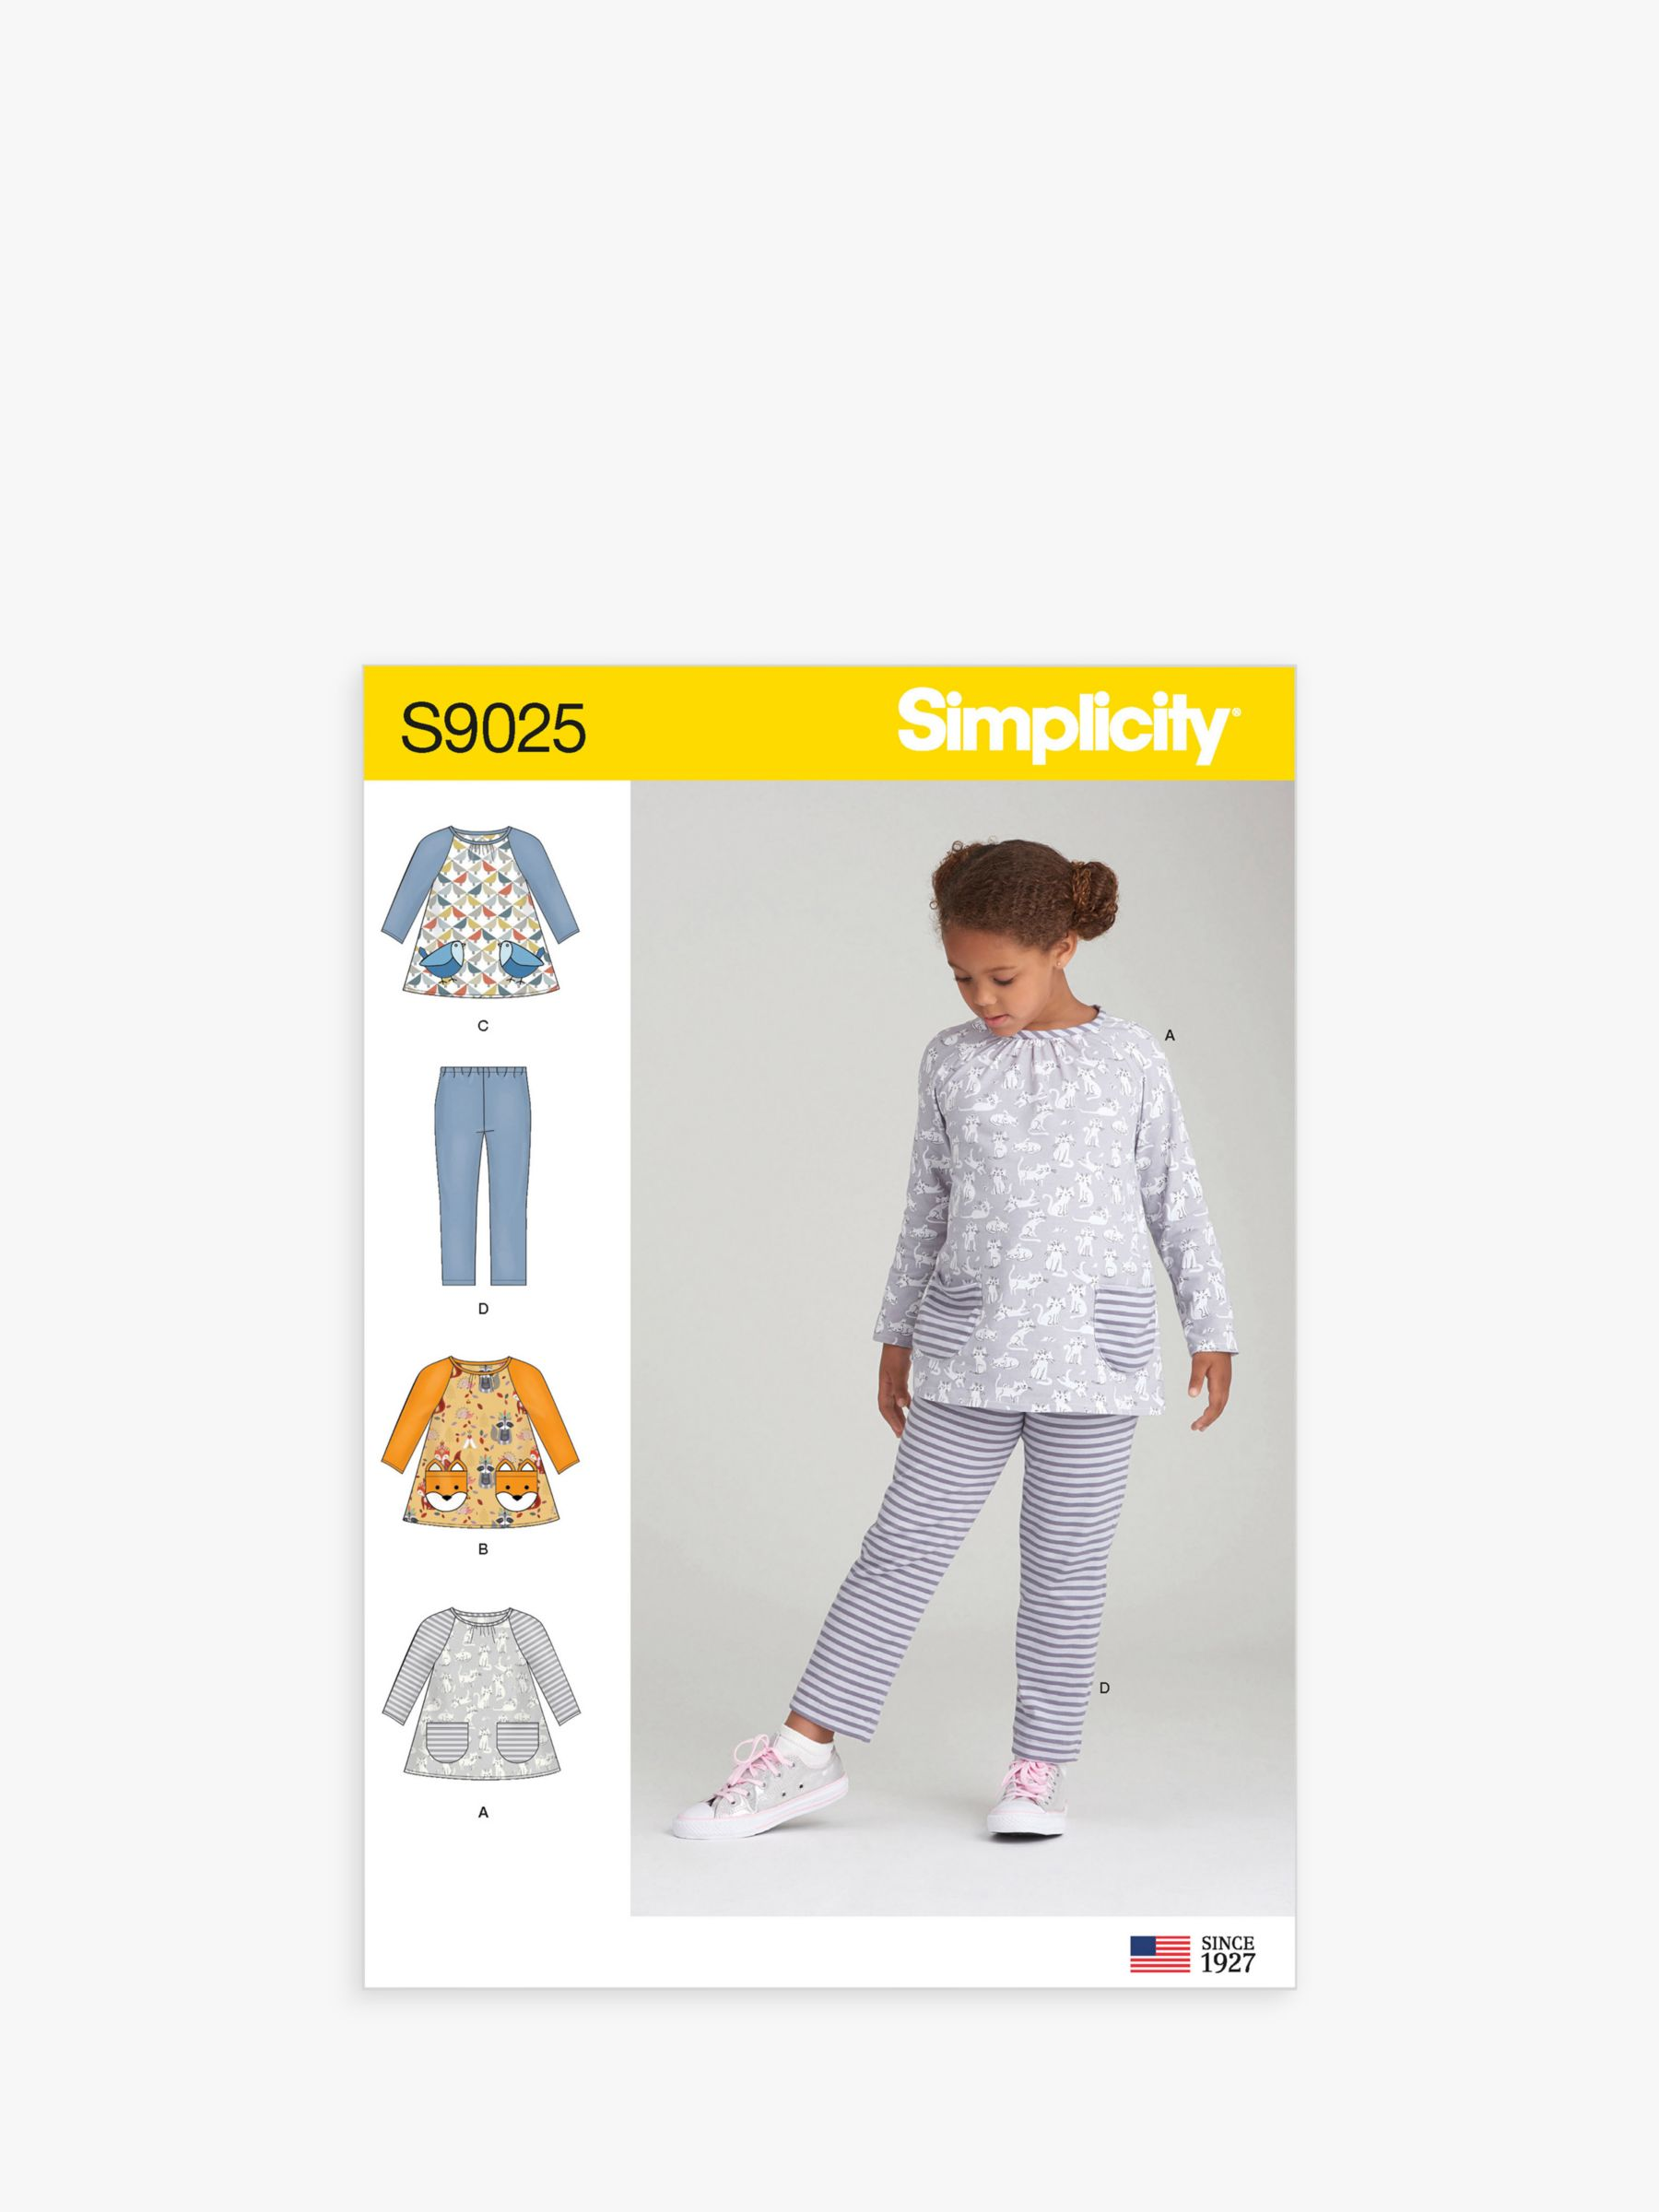 Simplicity Simplicity Children's Top and Legging Sewing Pattern, 9025, A